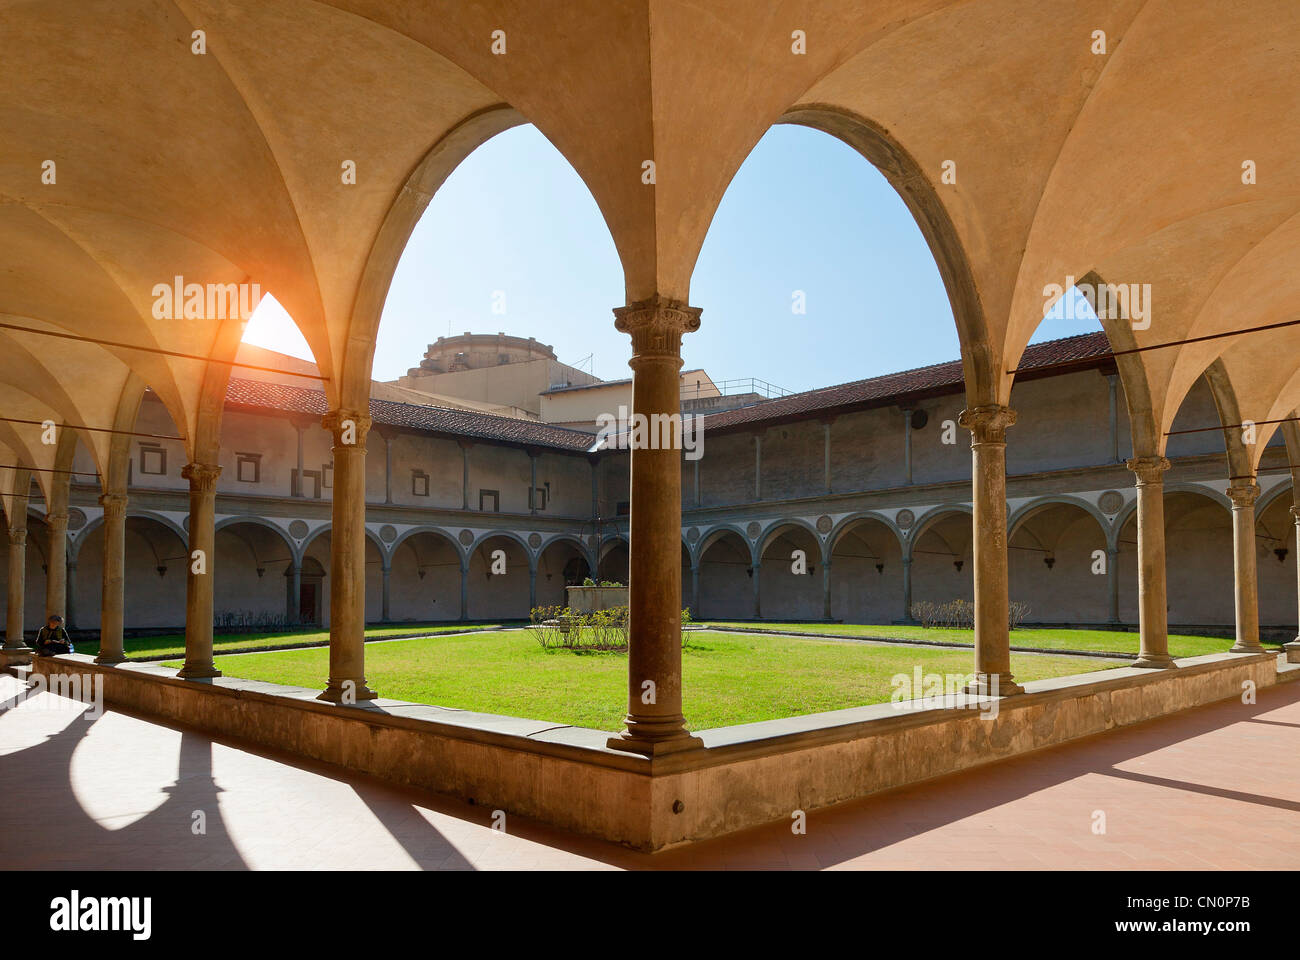 Italy, Florence, Basilica of Santa Croce, The Cloister - Stock Image